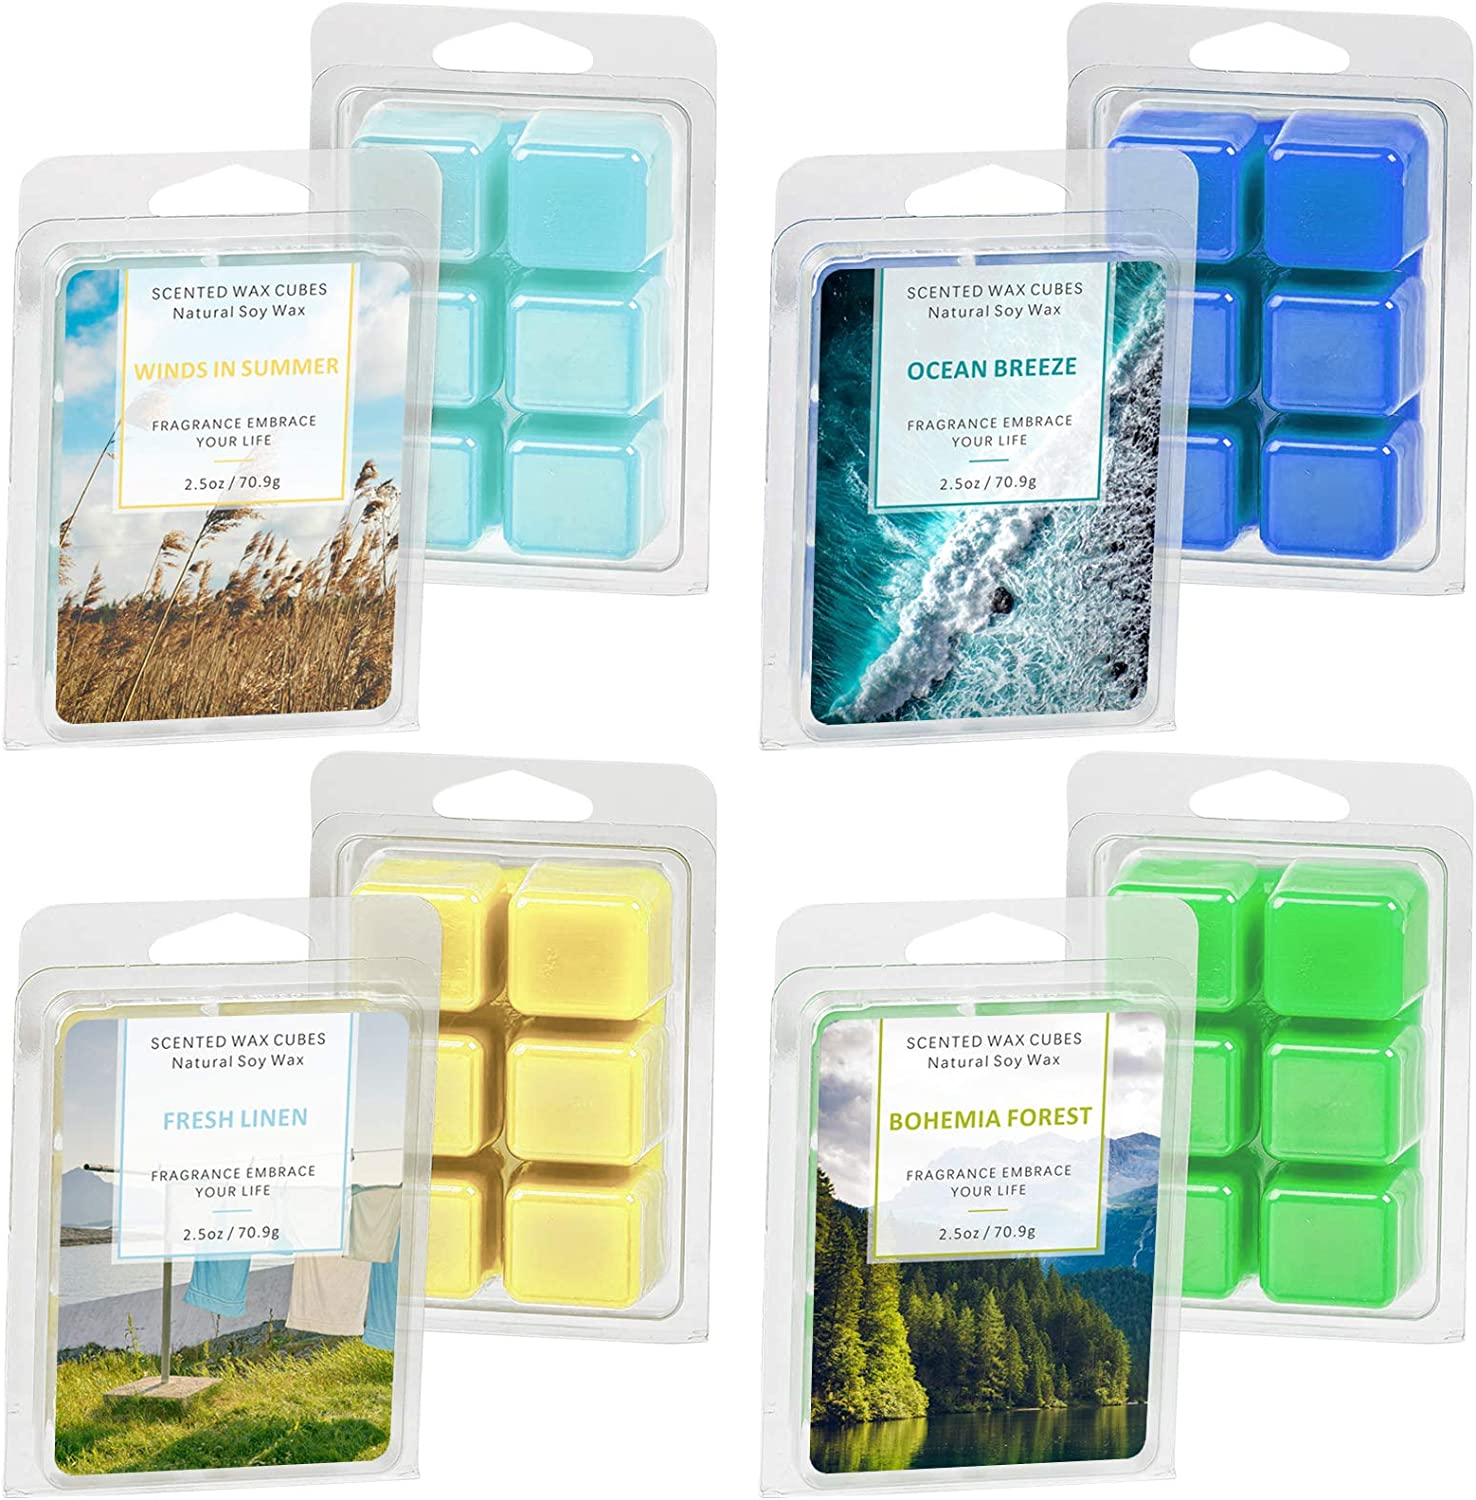 LASENTEUR Scented Wax Melts for Warmer Cubes/Tarts, Set and Home Fragrance for Candle Wax Warmer (Ocean, Linen, Forest, Winds in Summer) Nature Wax 4 x Packs